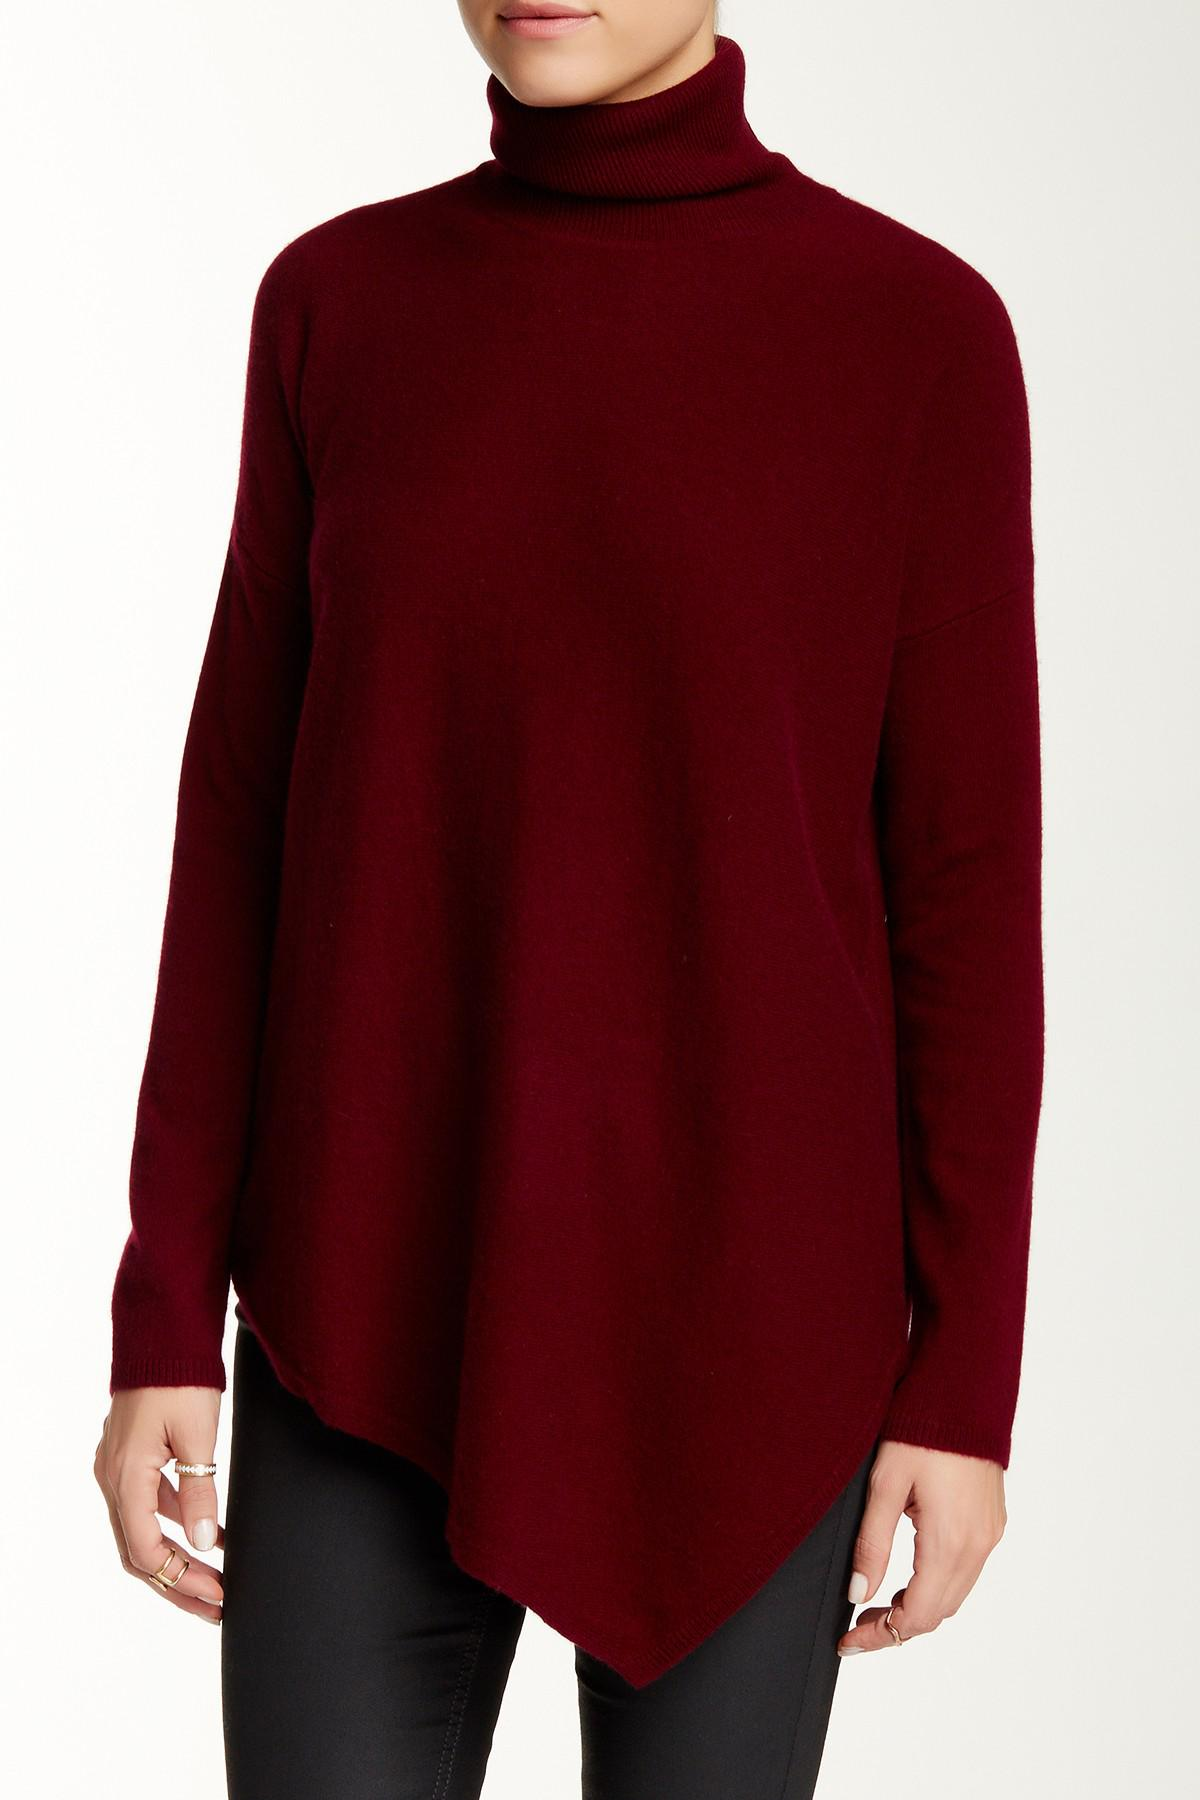 Sofia cashmere Asymmetrical Hem Cashmere Sweater in Red | Lyst